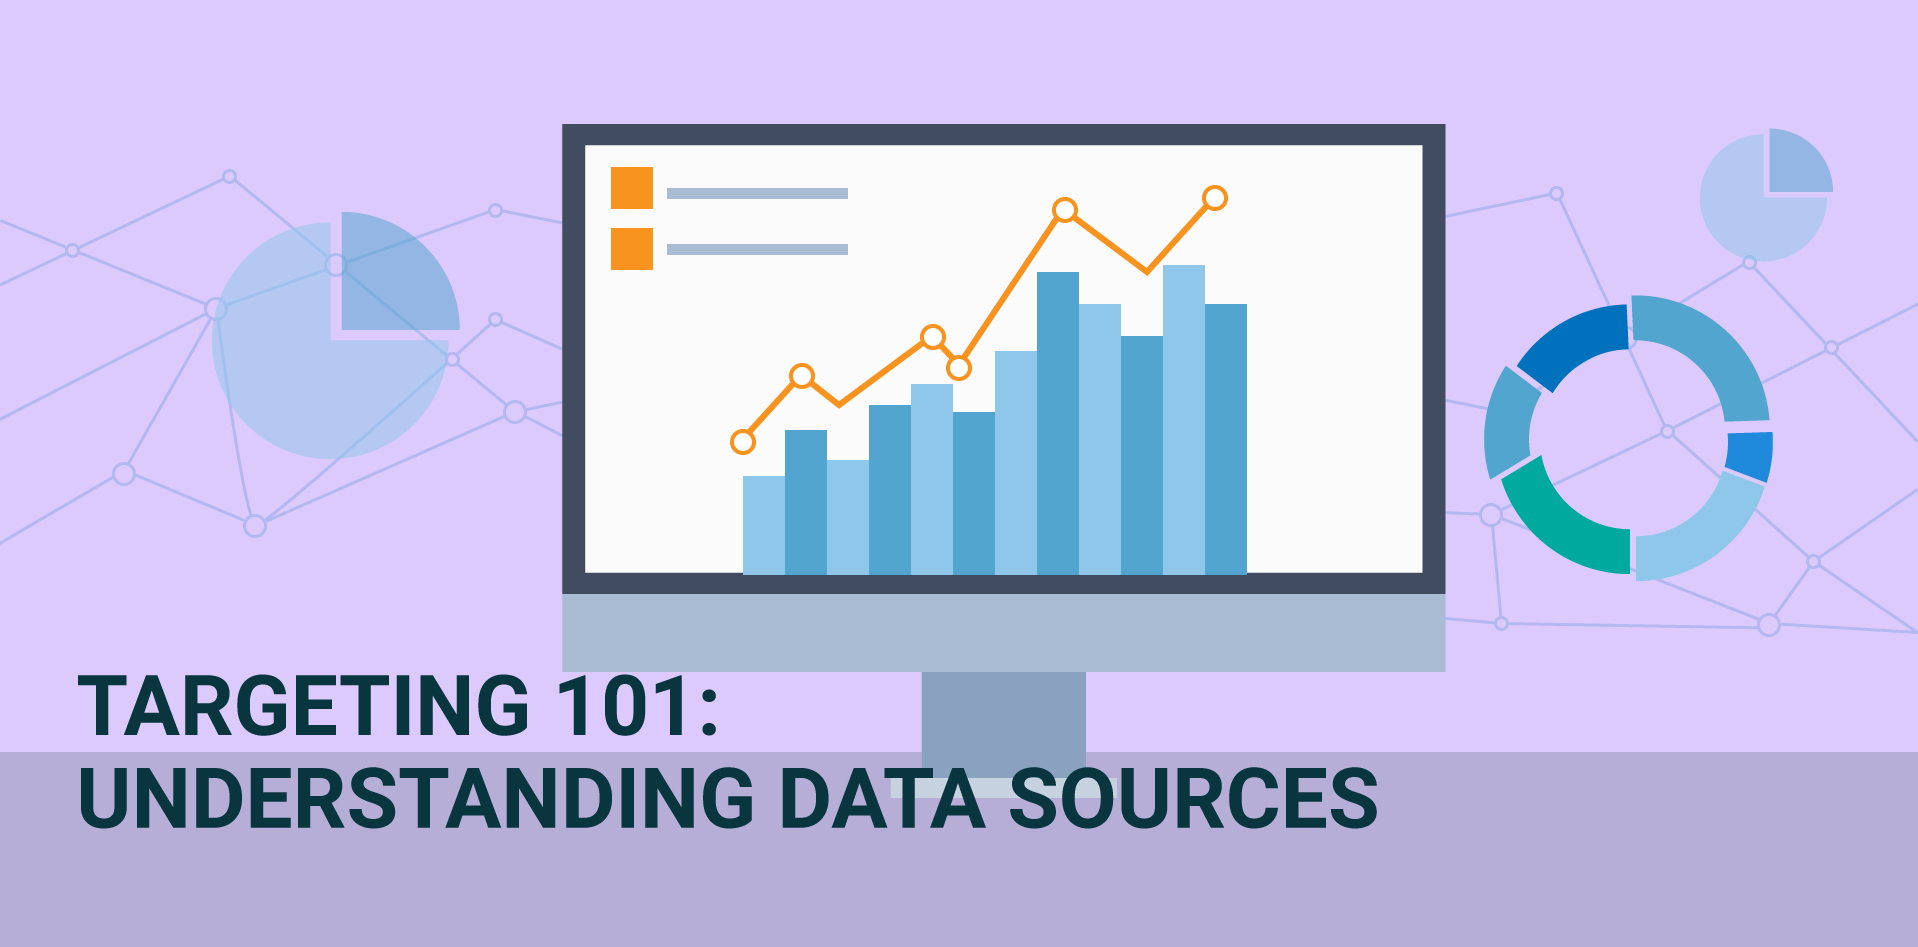 Targeting 101: Understanding different data sources and how to use them in your venue